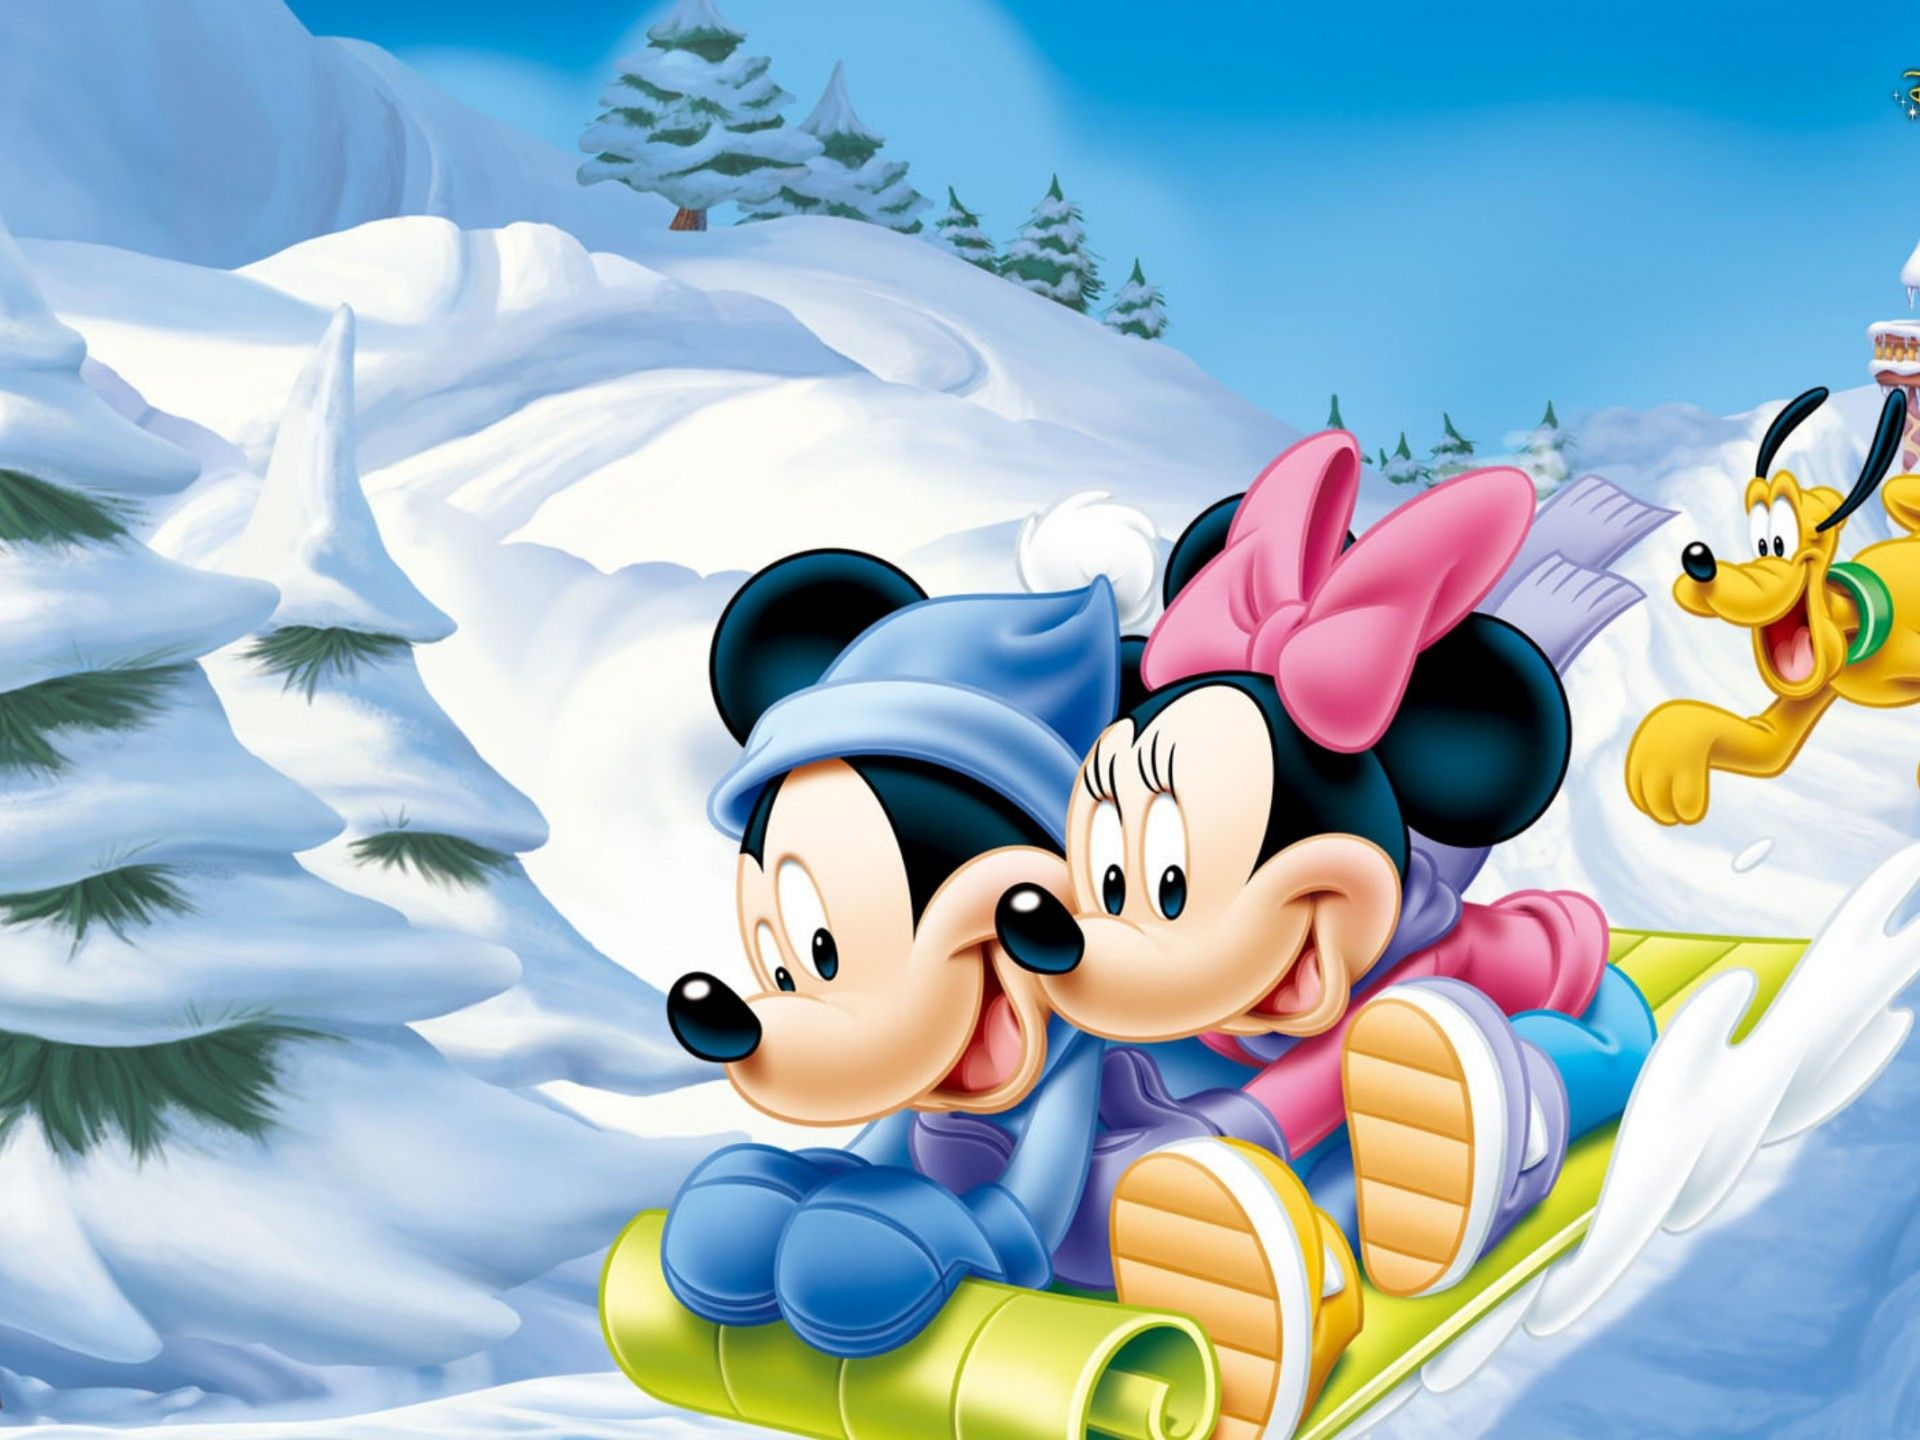 Mickey mouse cartoons hd wallpapers download hd walls 1920 - Love cartoon hd ...